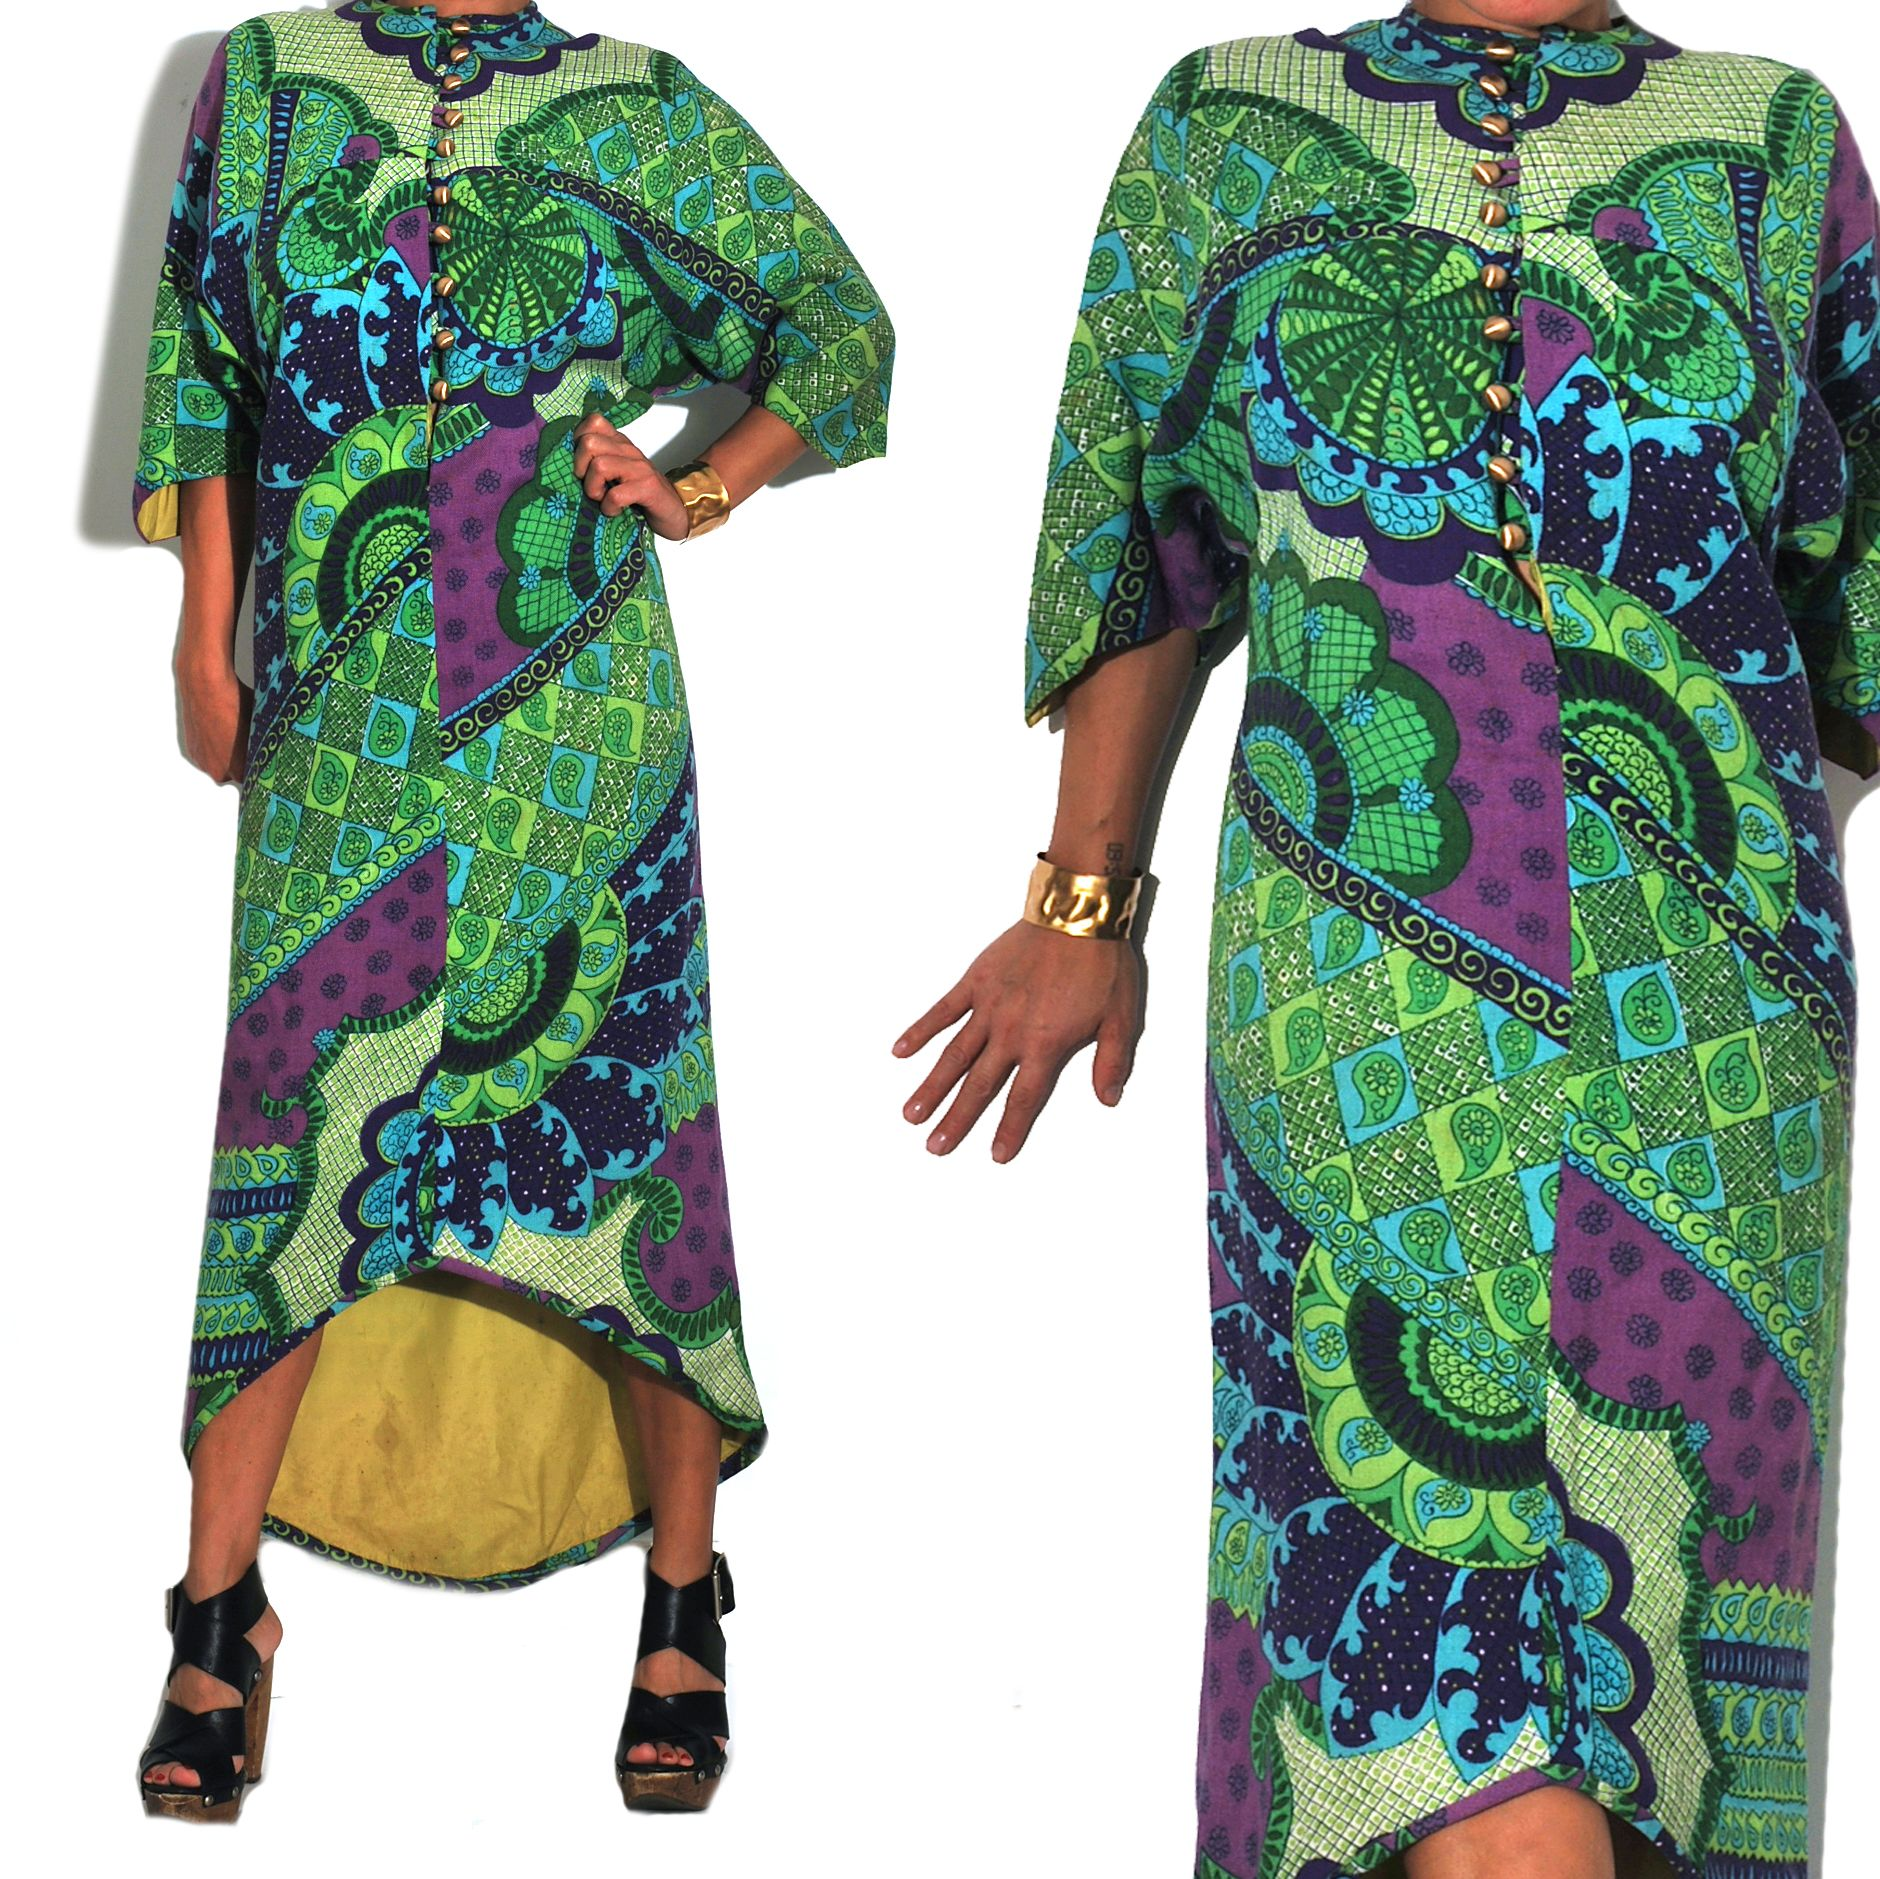 1960s Vintage WANDA BELLI Psychedelic Maxi Tunic. A curated selection of designer & unique vintage by A Part of the Rest